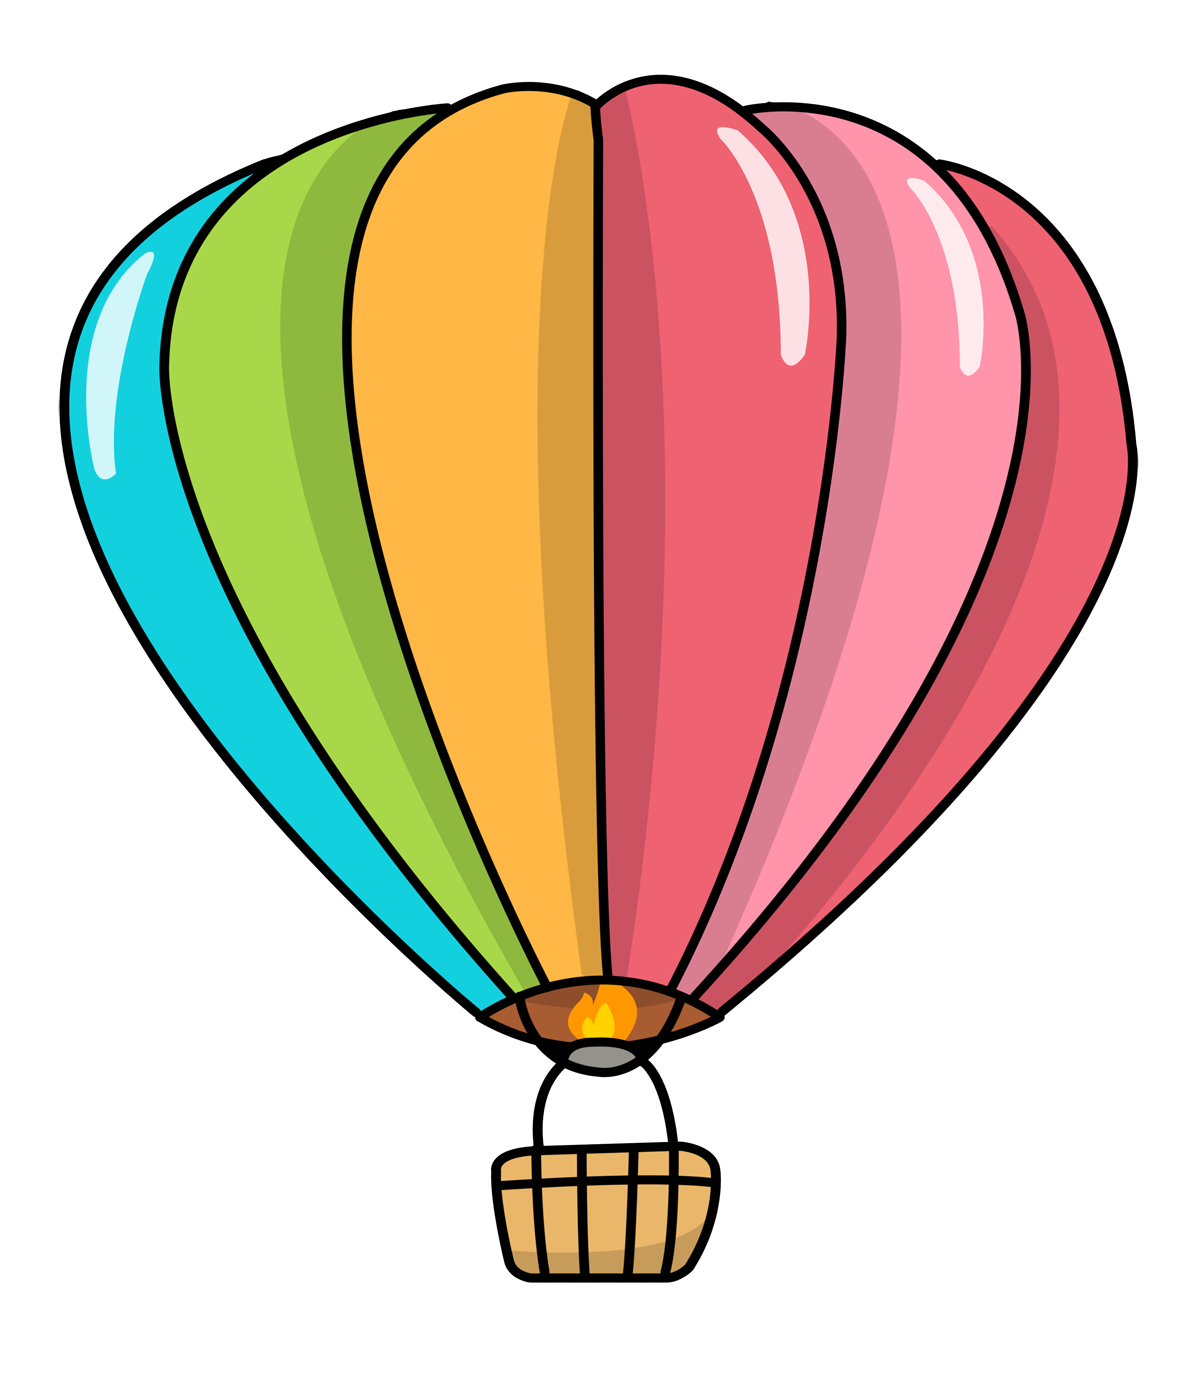 Other clipart colourful balloon. Free cartoon images download